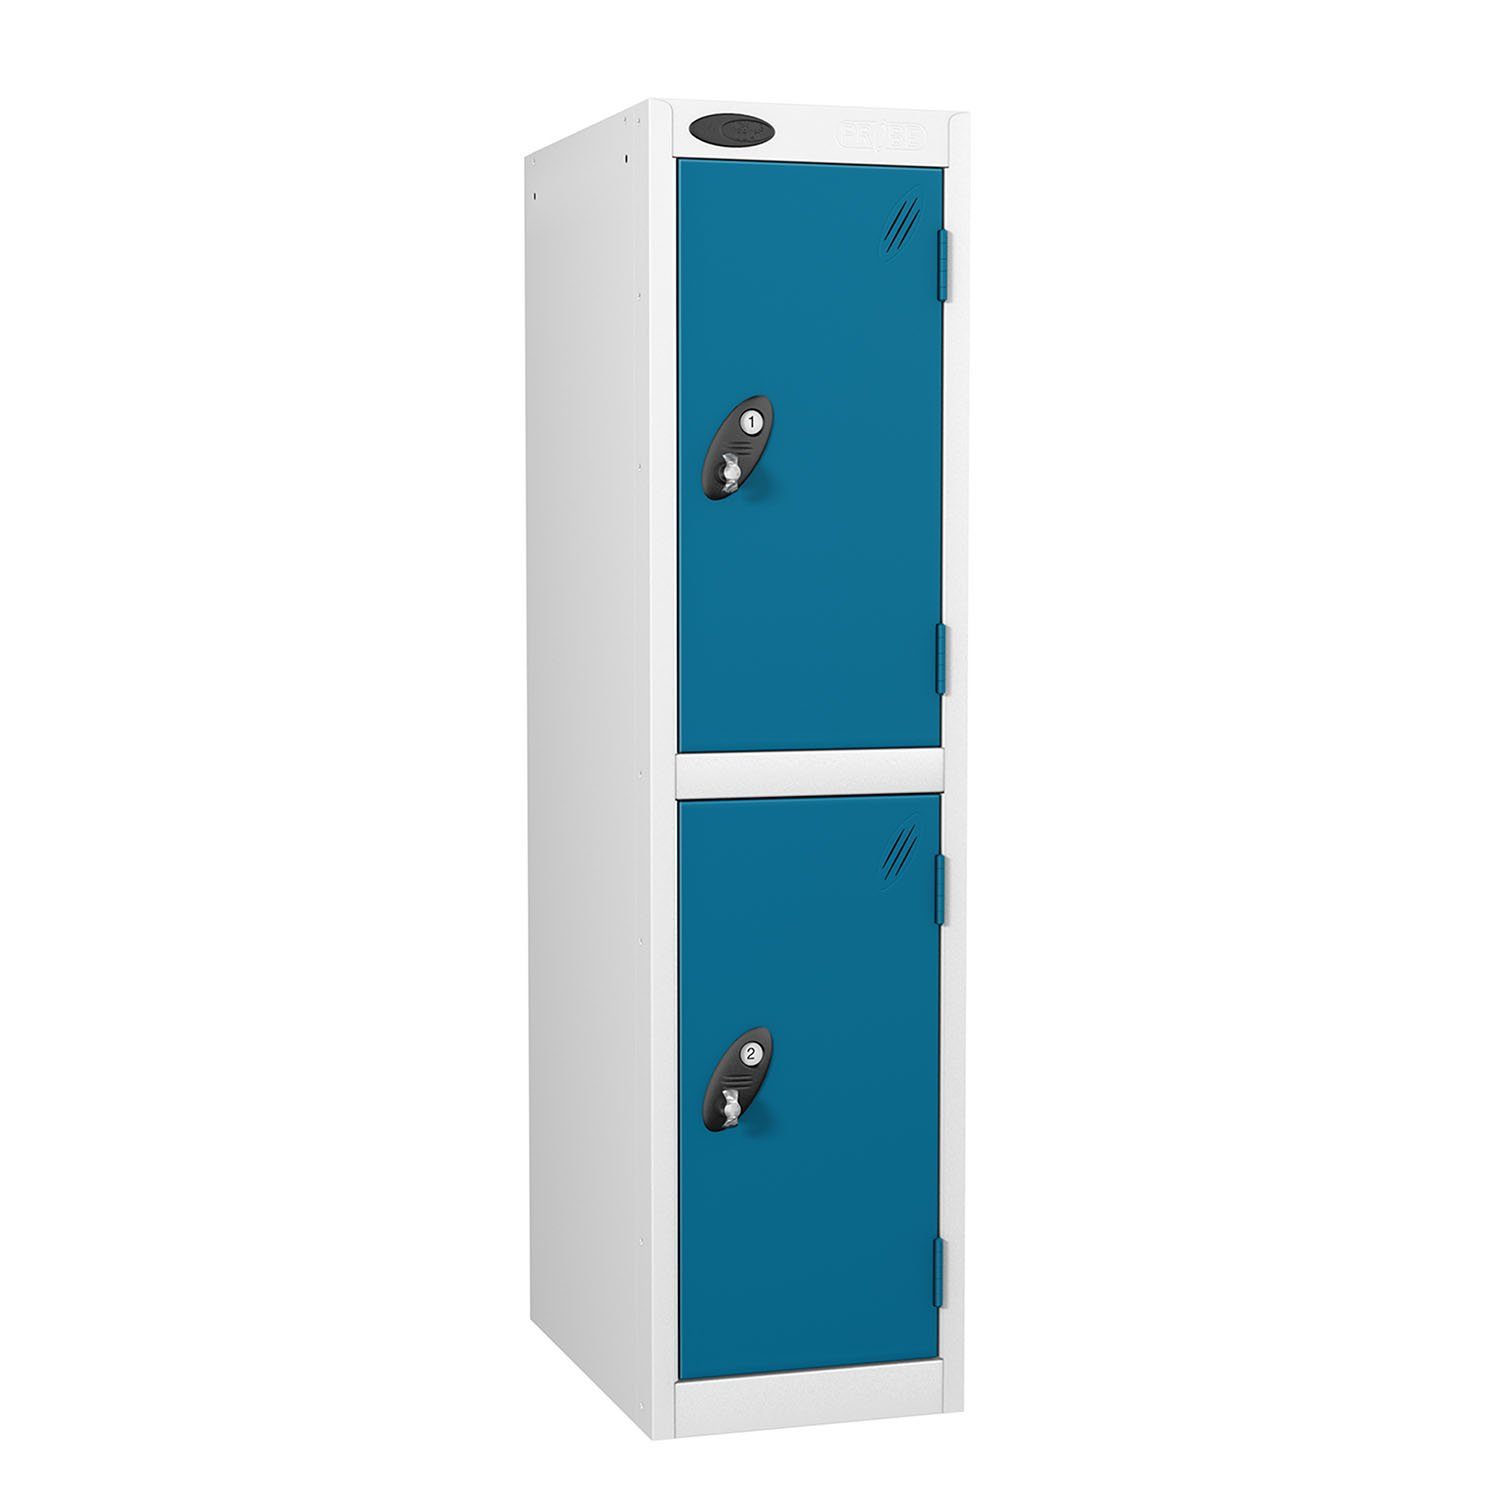 Probe 2 doors low locker in blue colour